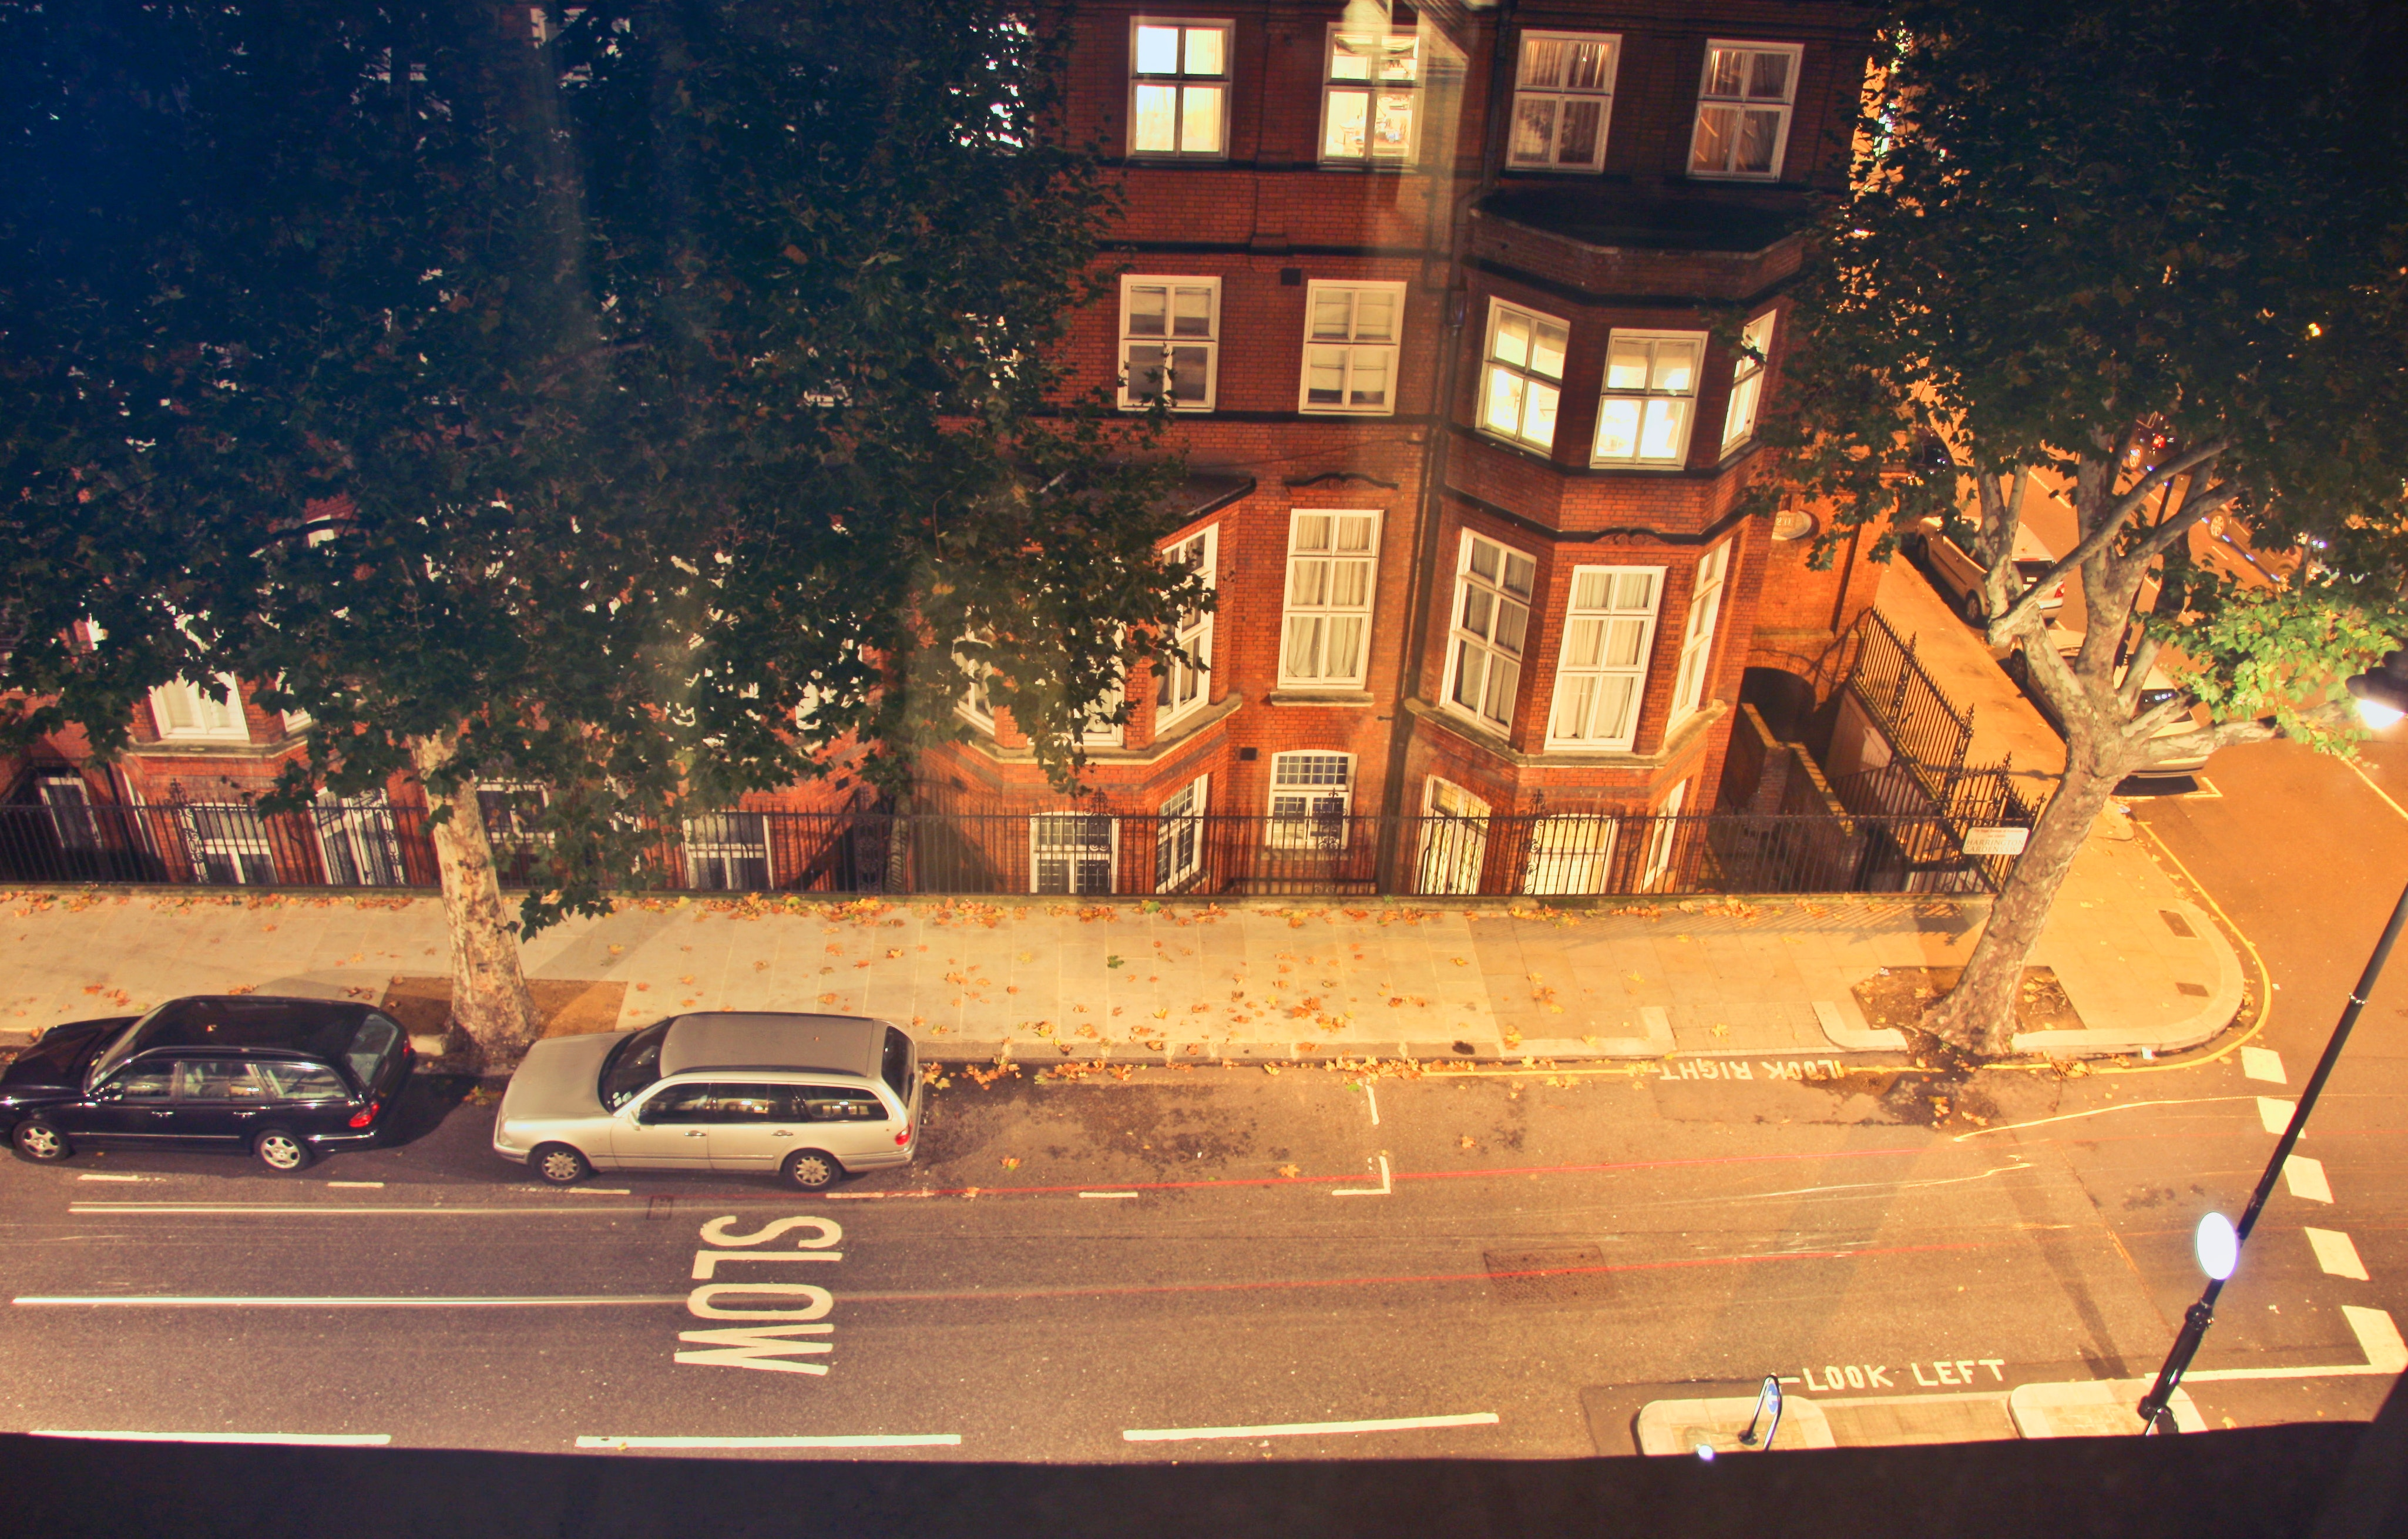 Two cars parked near brown concrete building during nighttime photo